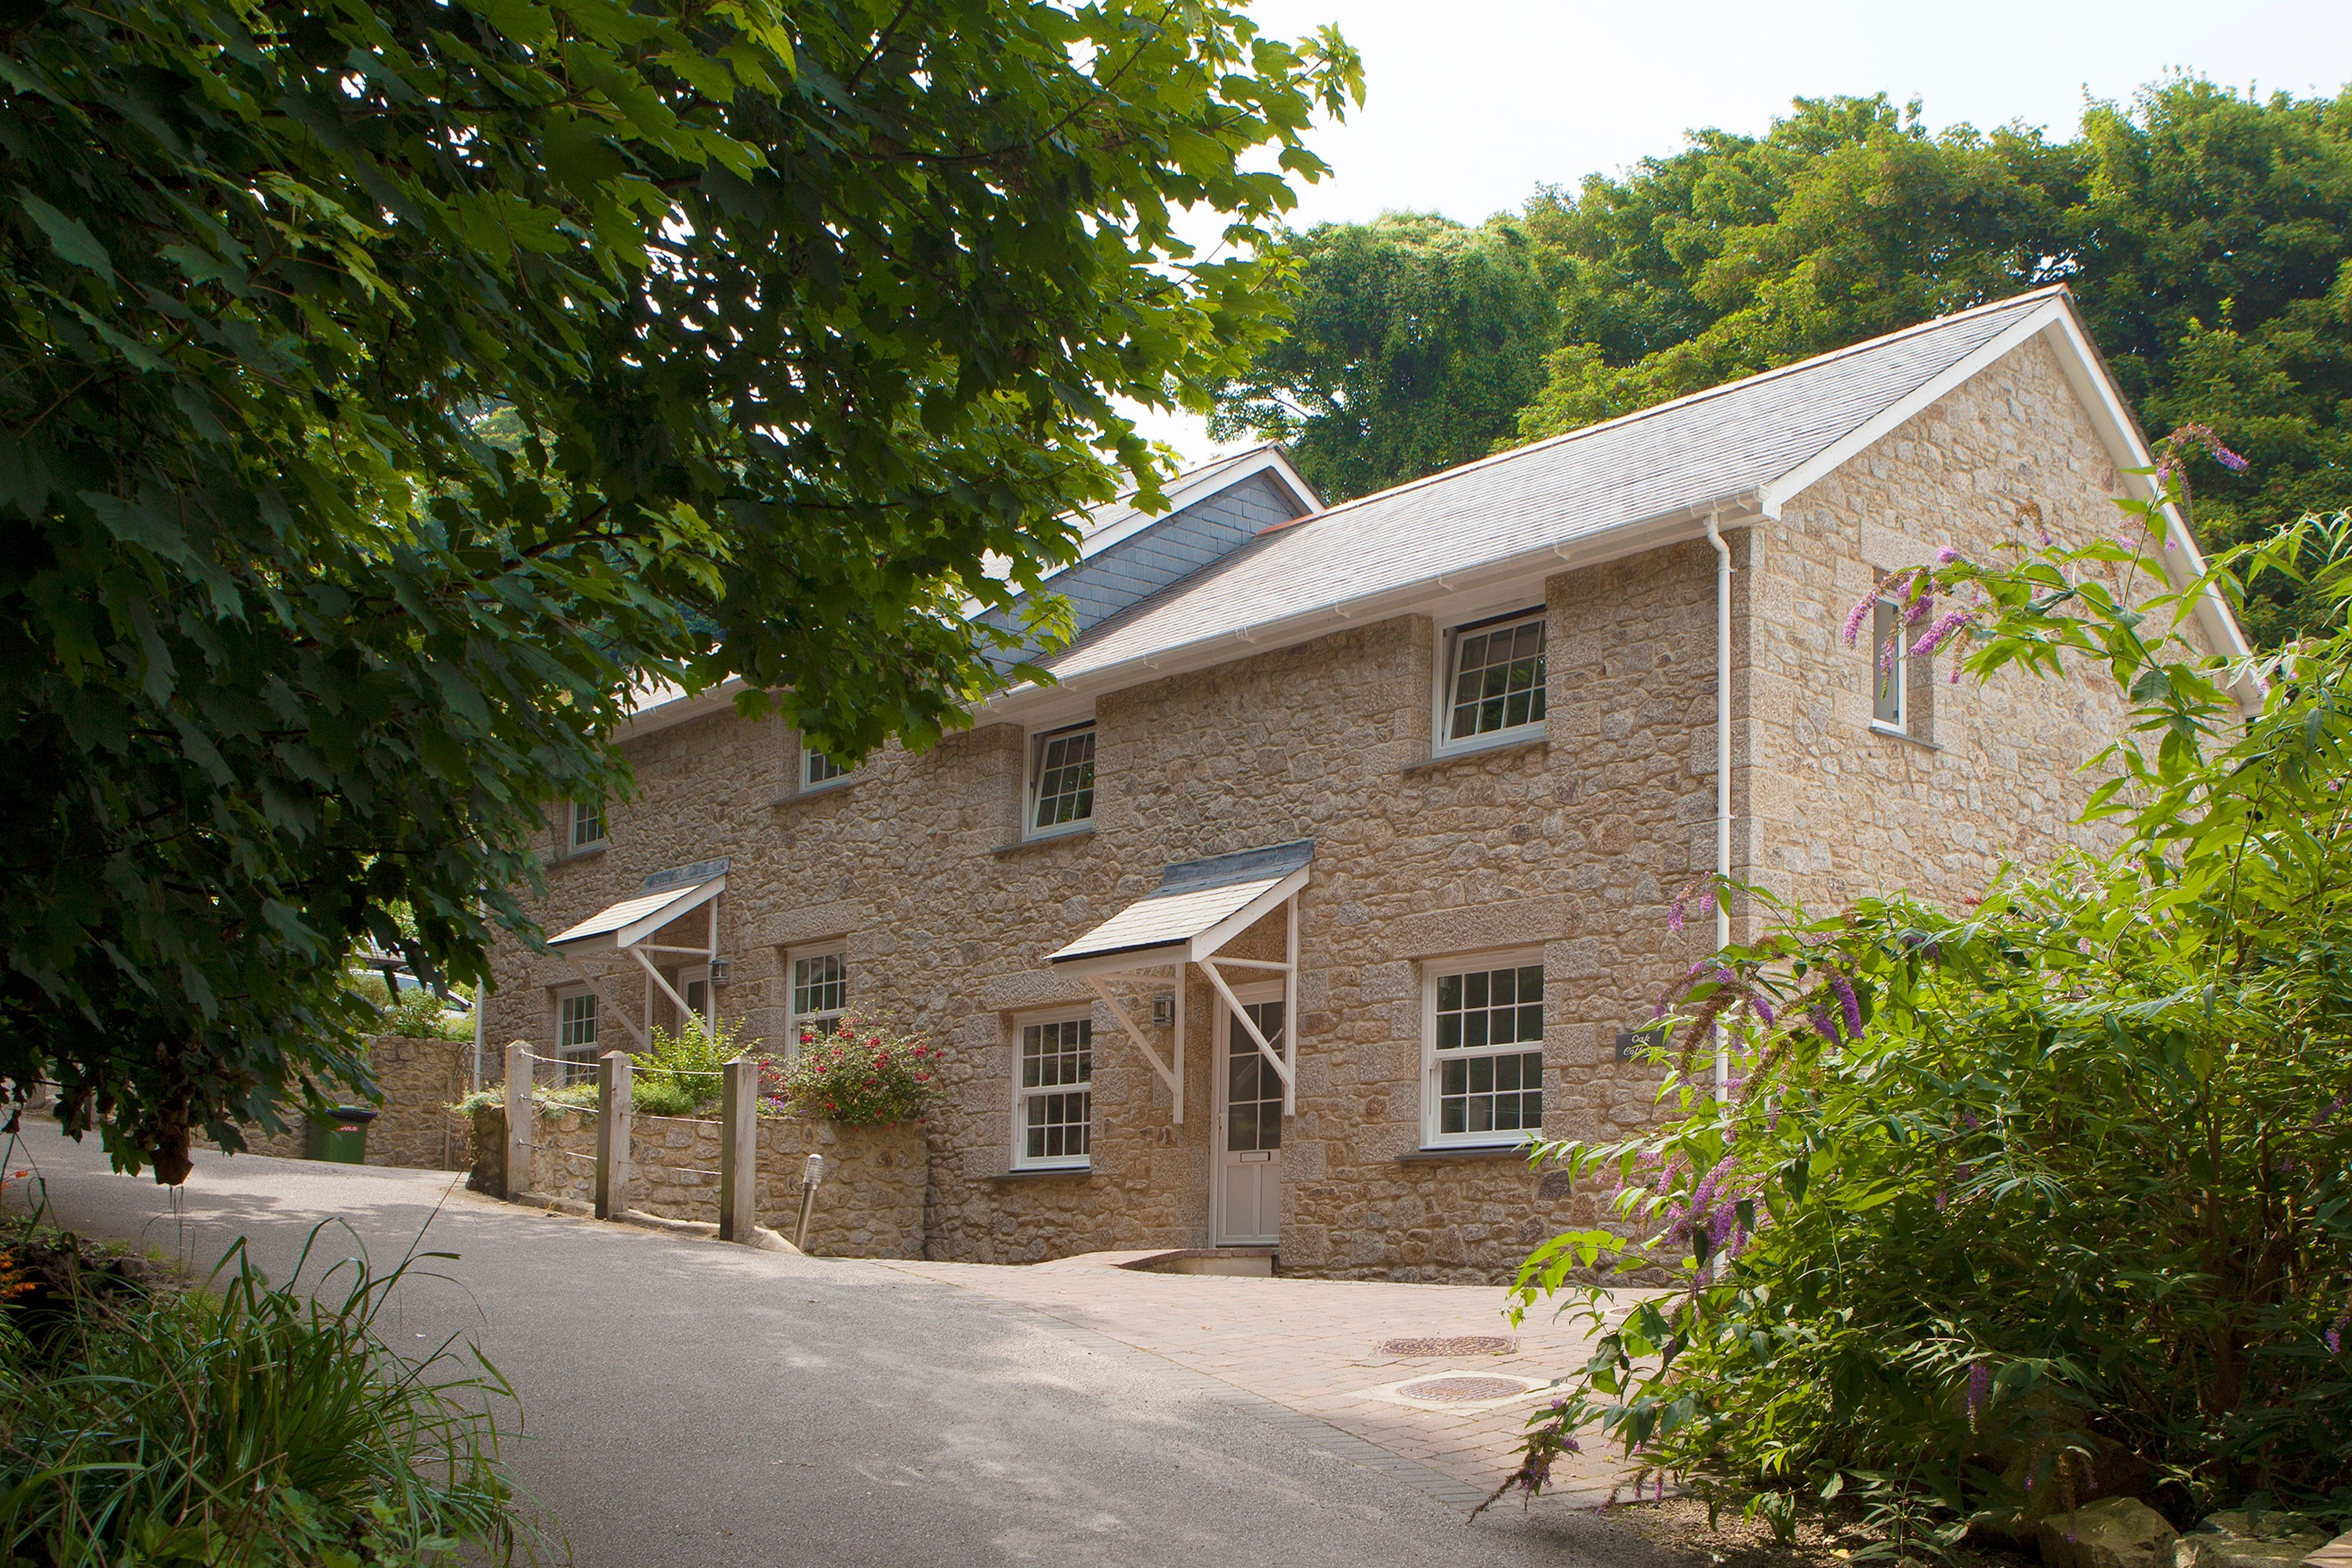 Valley Cottages at Carbis Bay estate